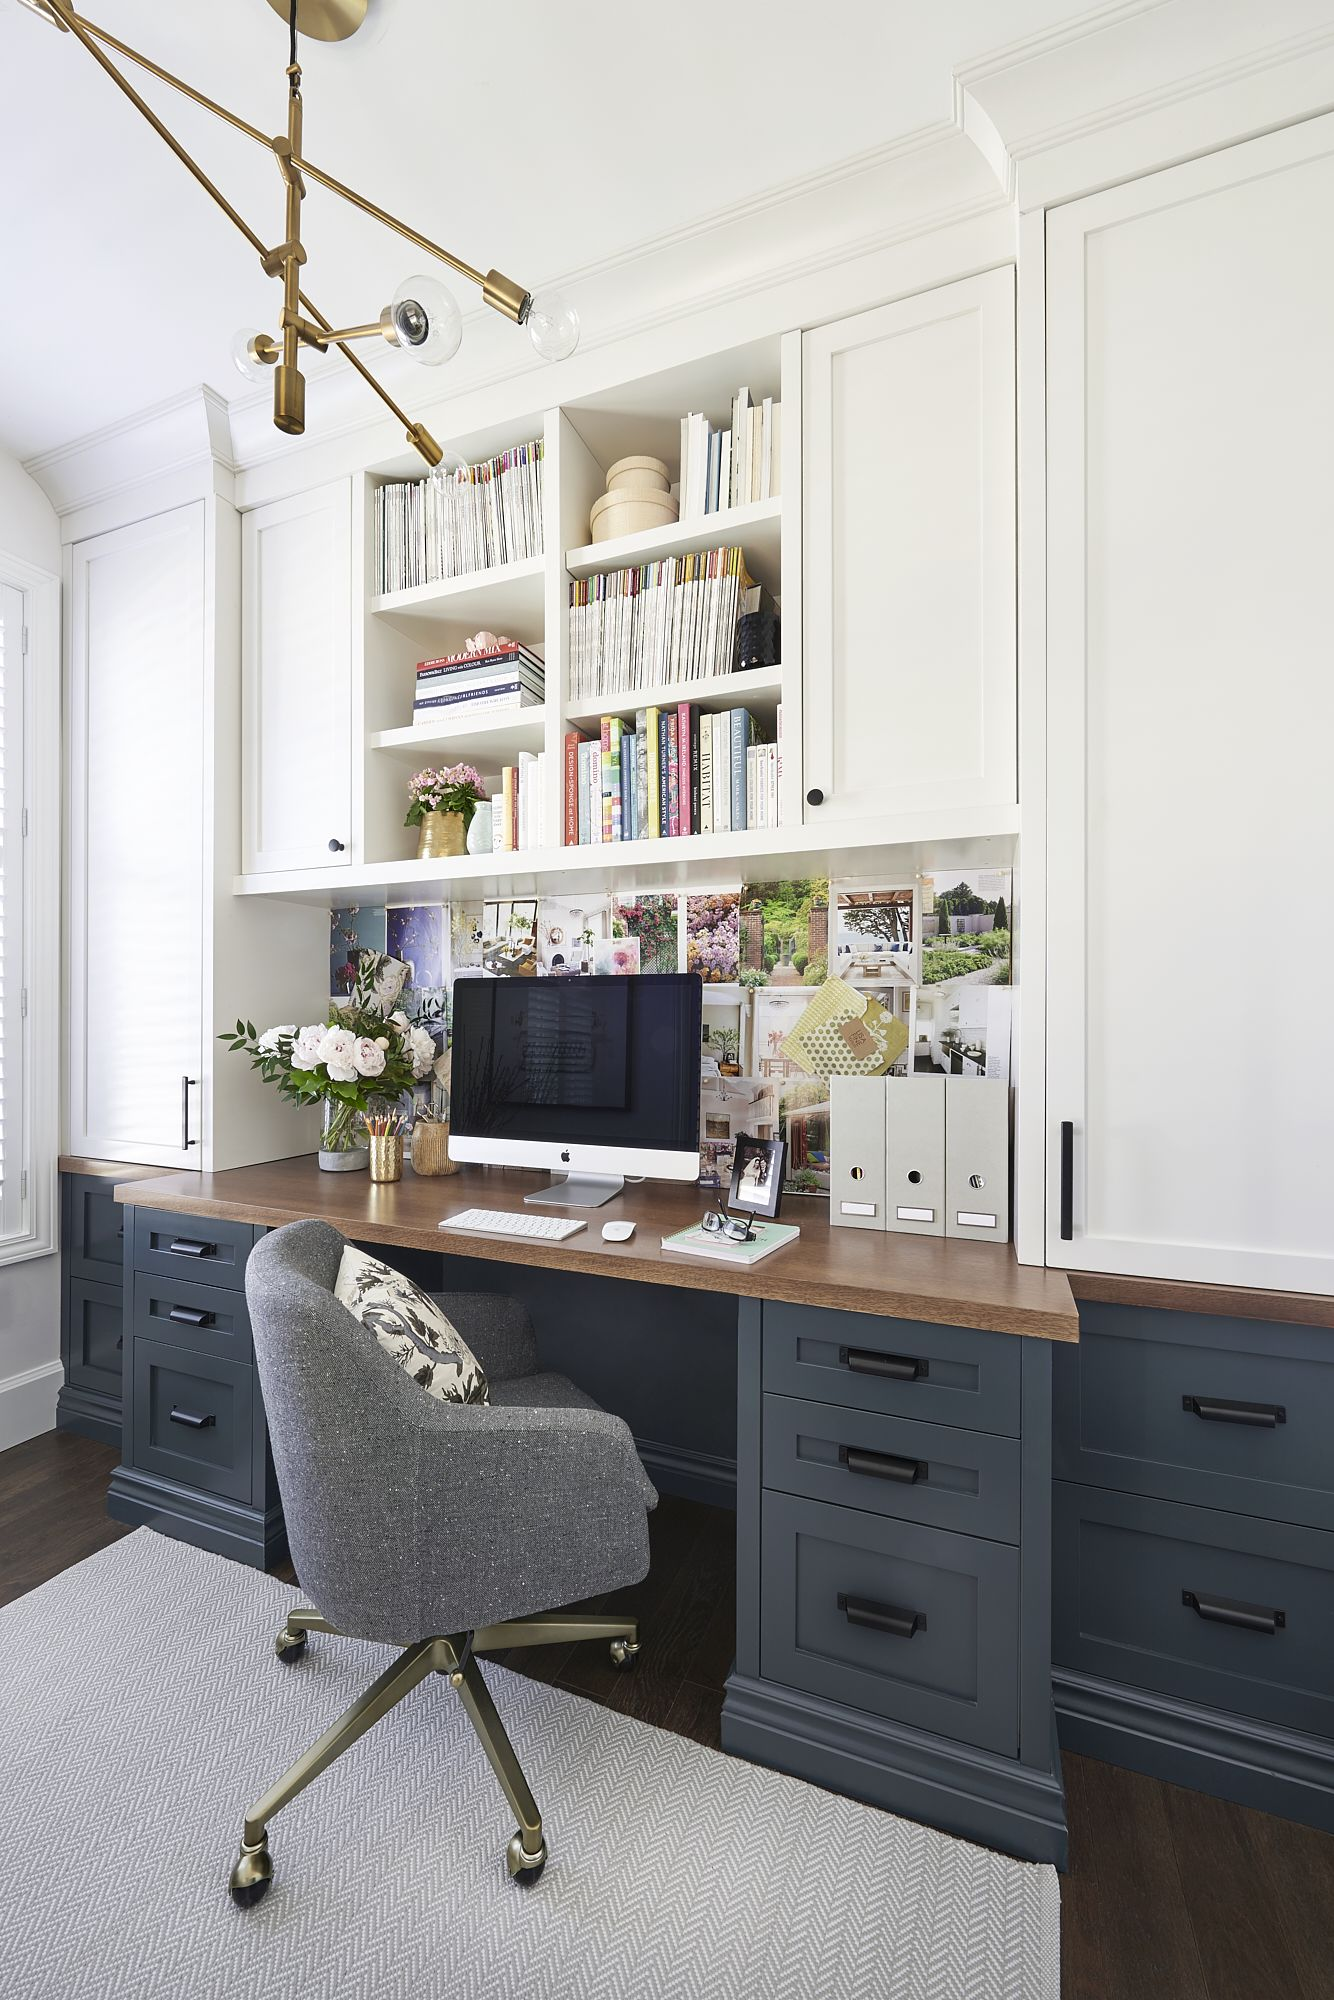 50 home office ideas working from your home with your style space crafts office makeover Home office room design ideas